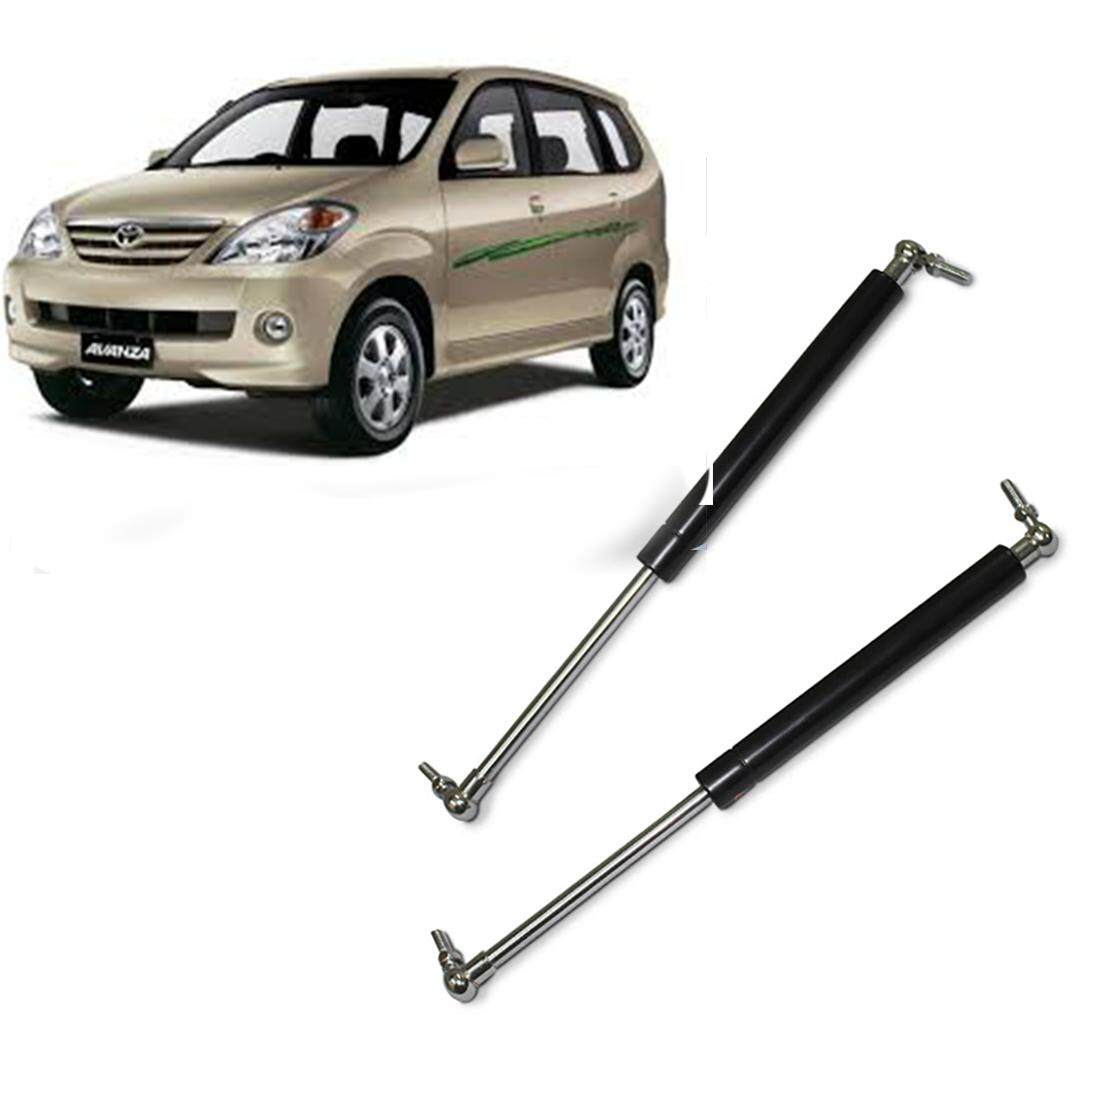 Toyota Products Accessories For The Best Prices In Malaysia 1992 Camry Fuel Filter Location Avanza With Bracket Rear Bonnet Damper Boot Absorber Gas Spring Set 1car 2pieces